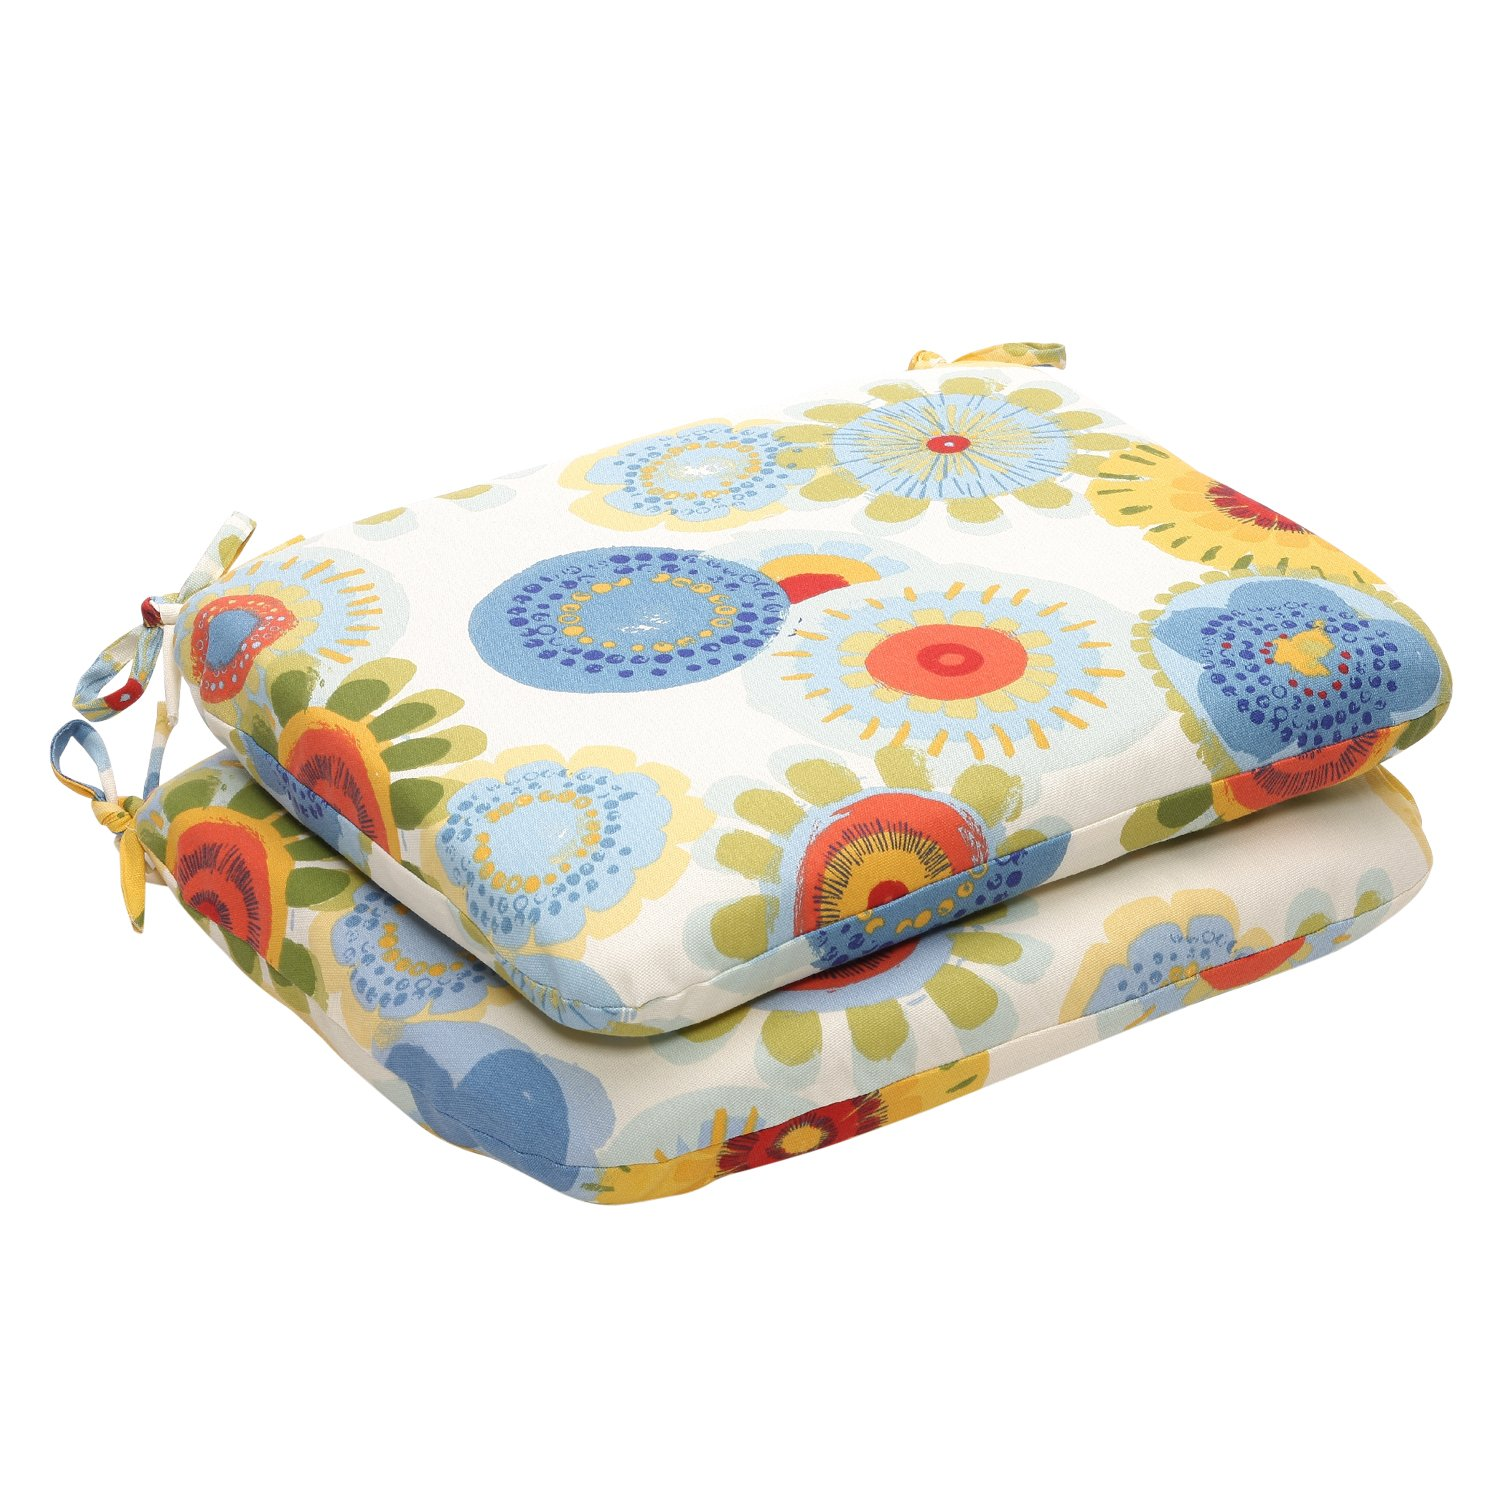 Pillow Perfect Indoor Outdoor Multicolored Floral Round Seat Cushion, 2-Pack